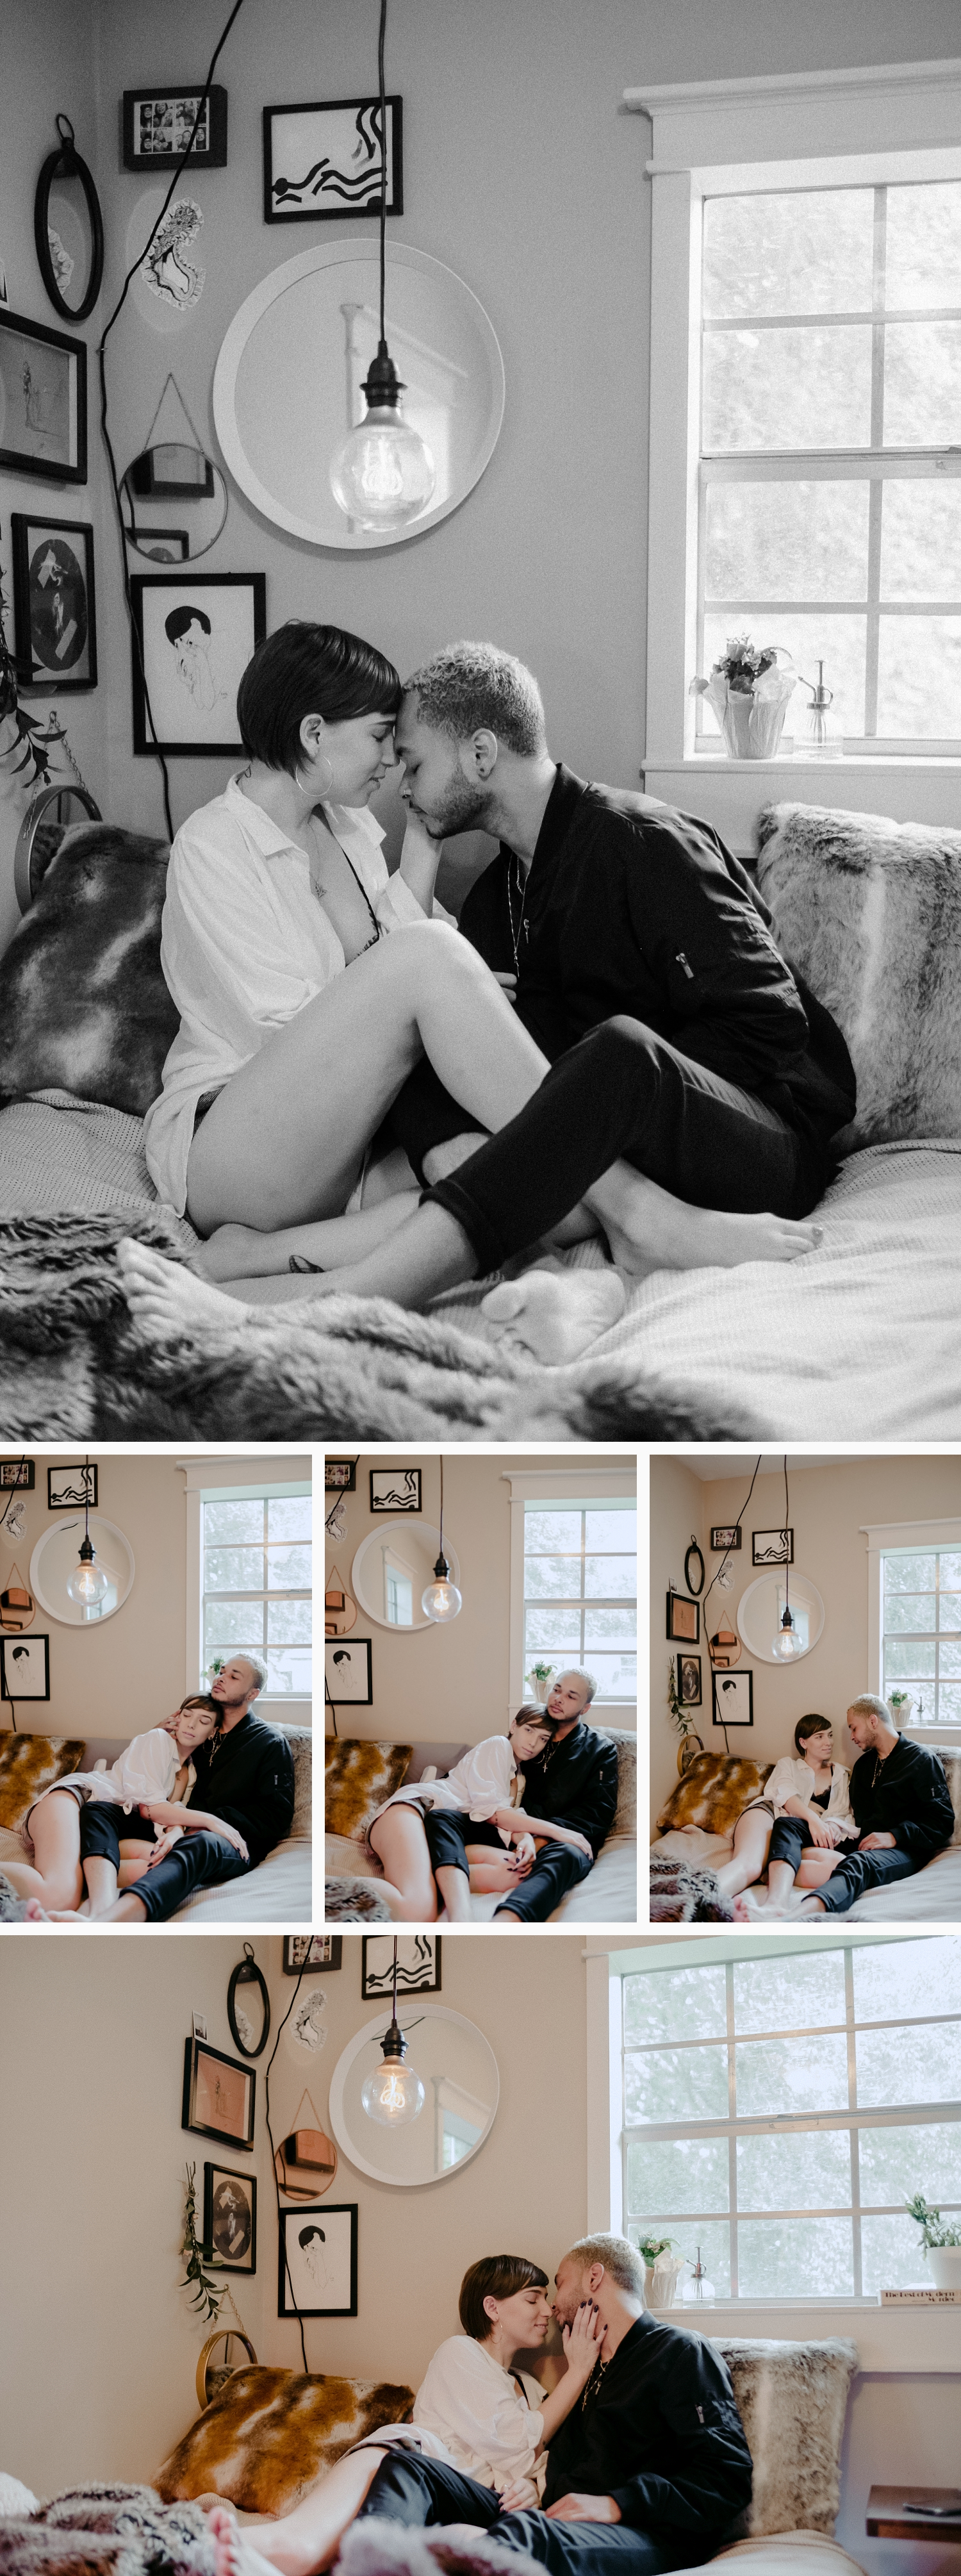 Lauren-And-Dom-Orlando-In-Home-Couples-Session-_0001.jpg